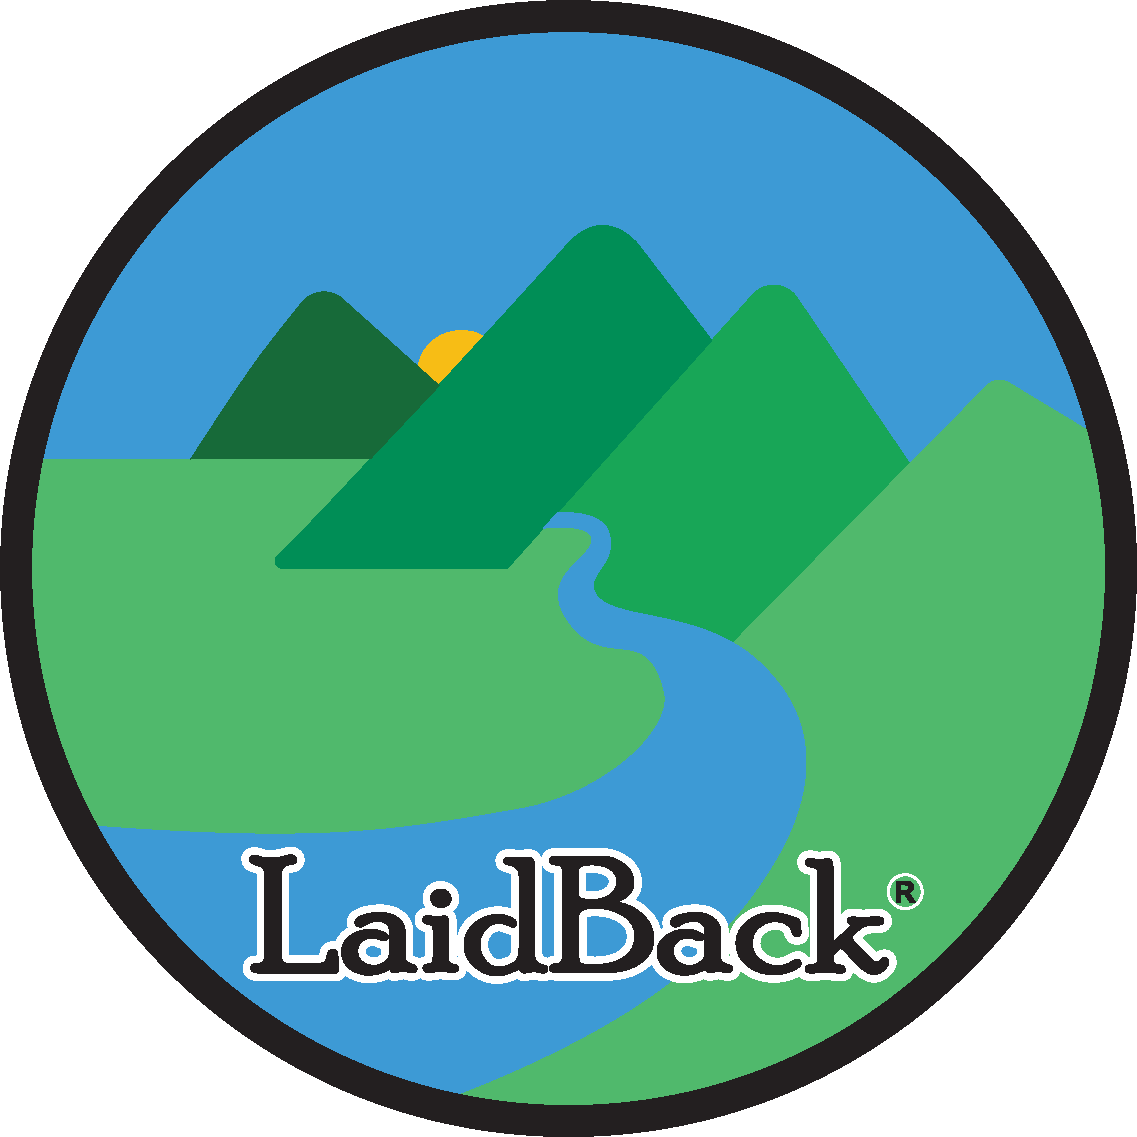 The laidback pad . Clipart sleeping nap mat